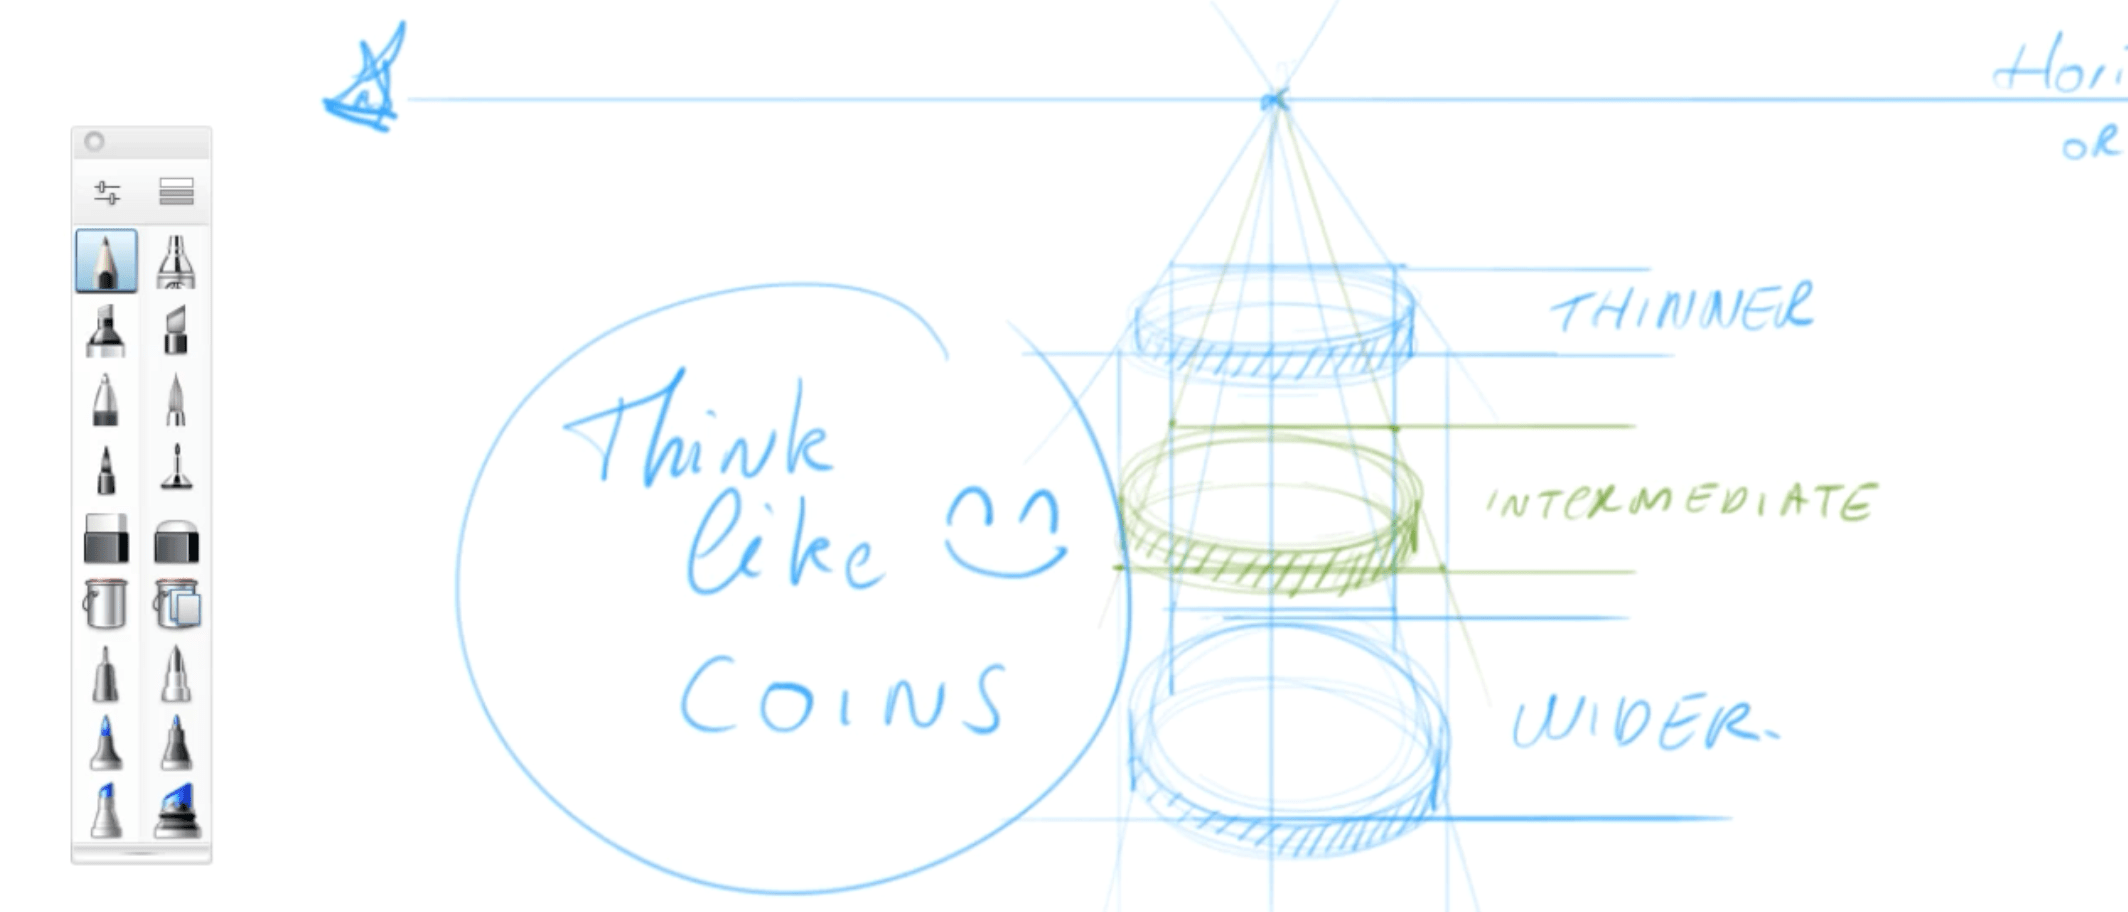 How to draw basic 3d volumes - cone - cube - cylinder - the design sketchbook - i